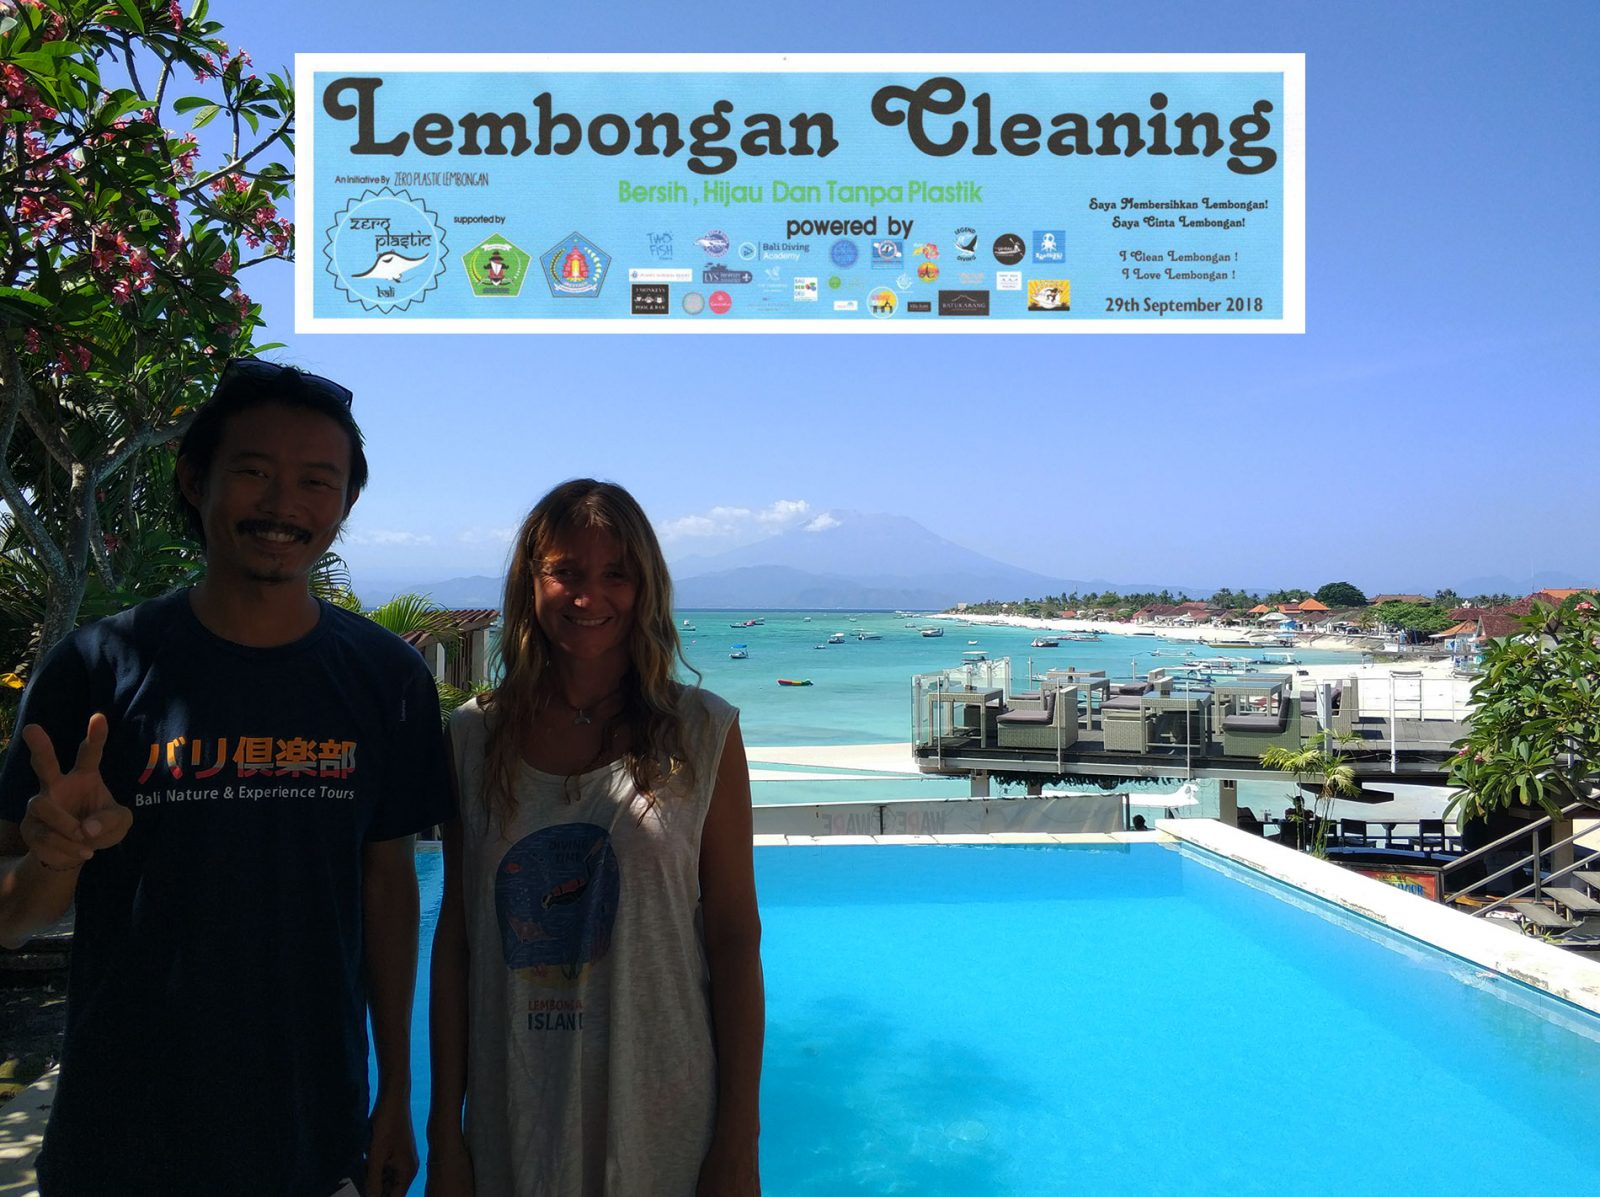 lembongan-cleaning-project